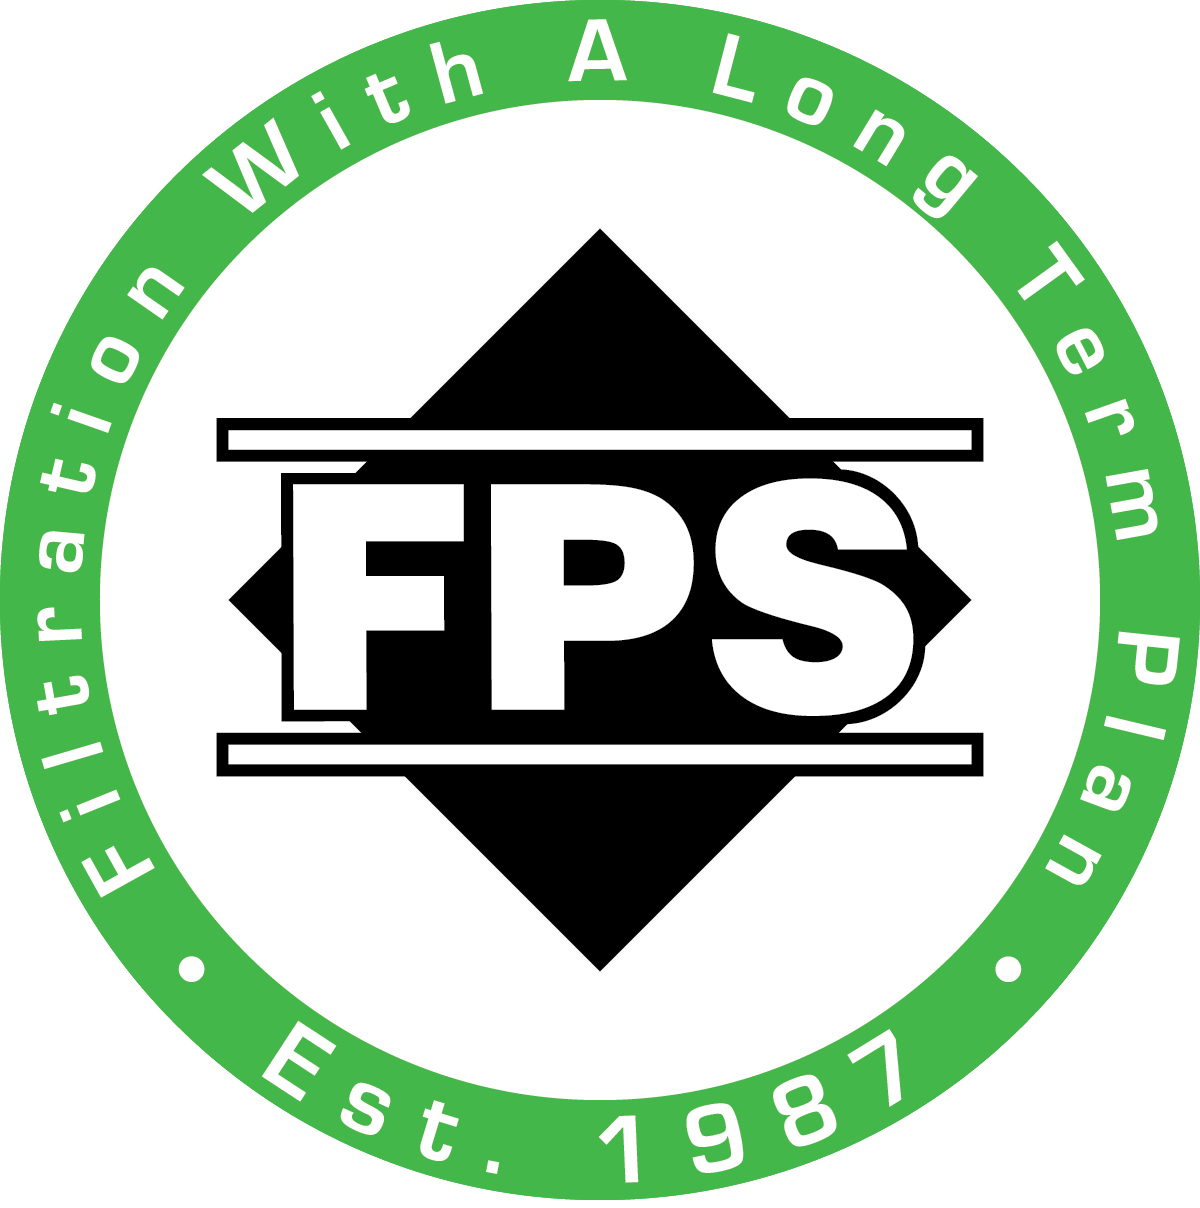 30 Years FPS LOGO 3